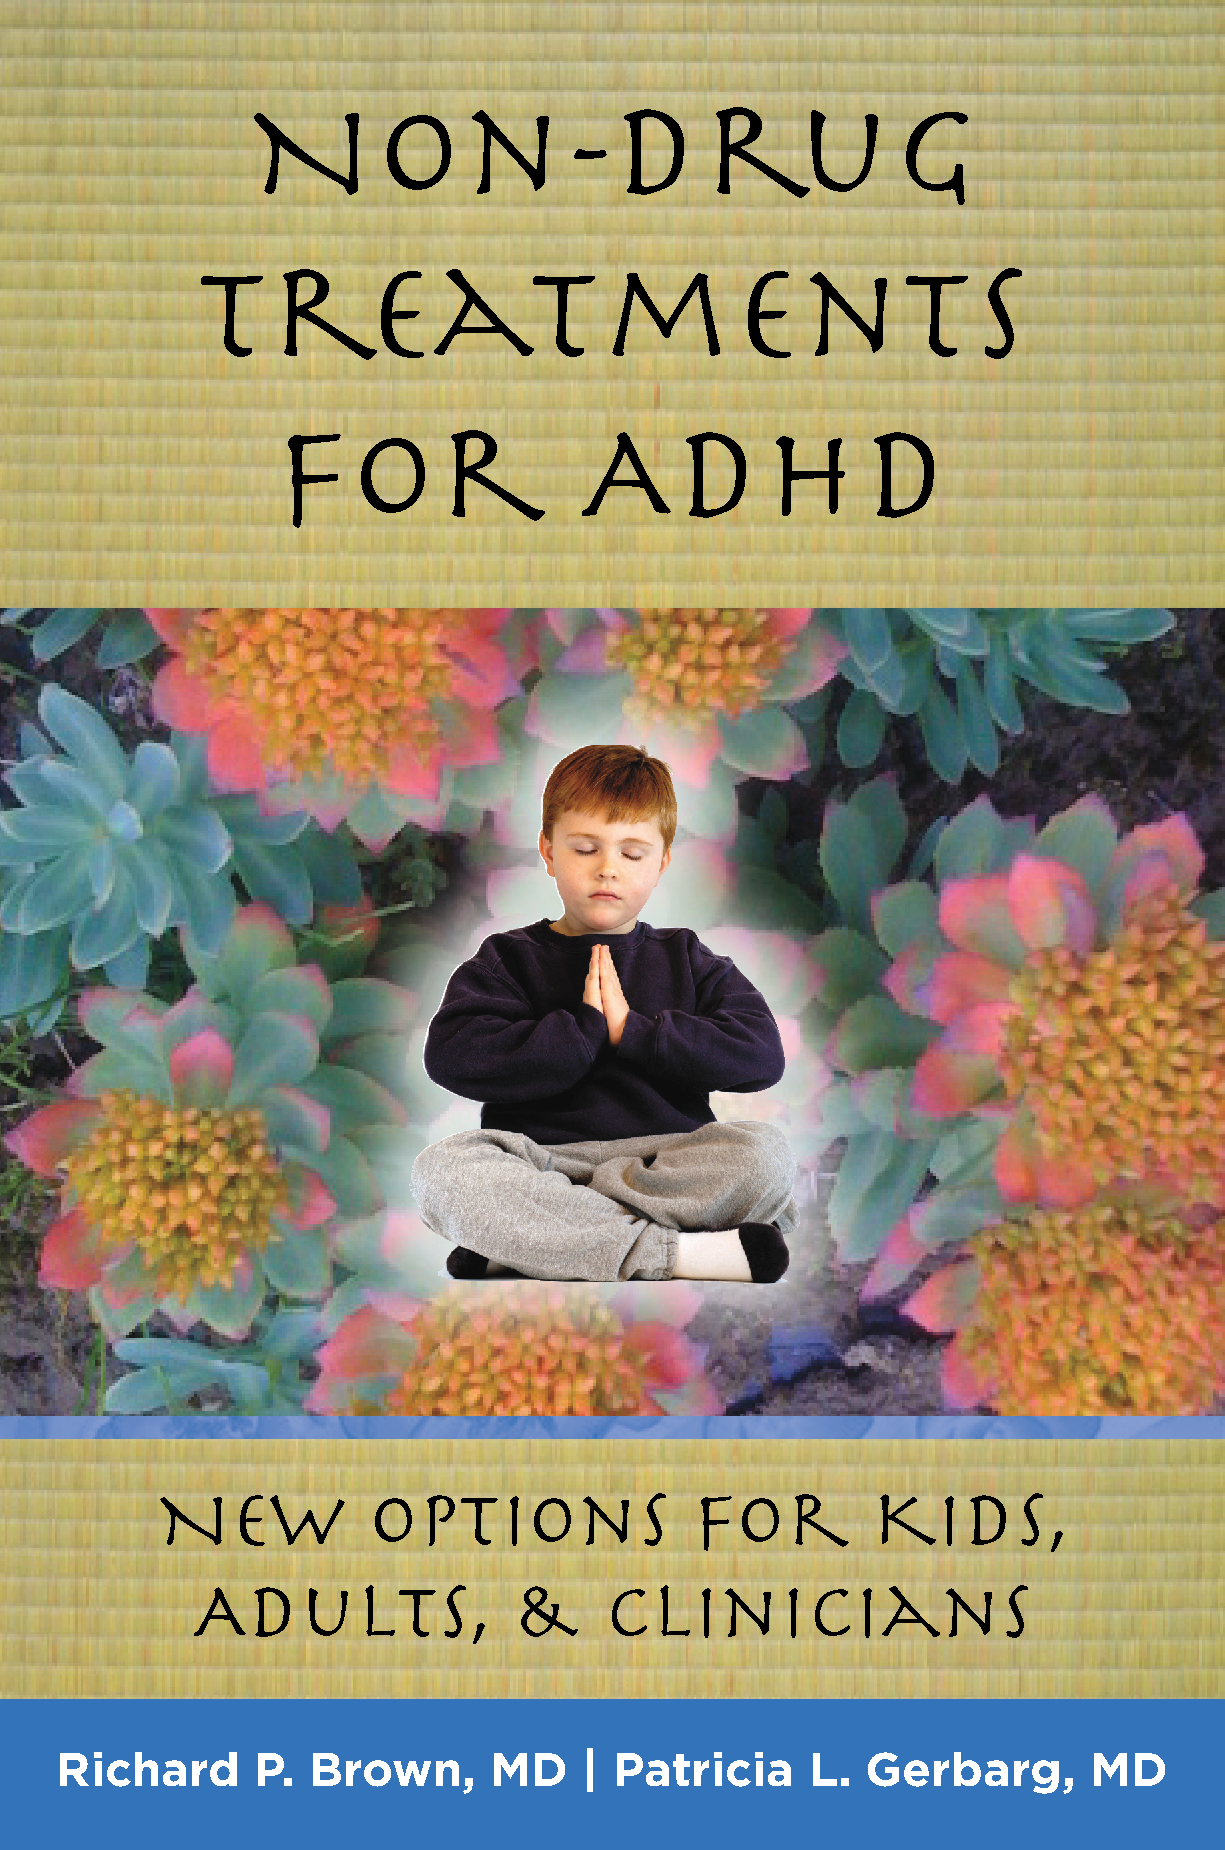 ADHDcompsreviseCover1-21-12.png